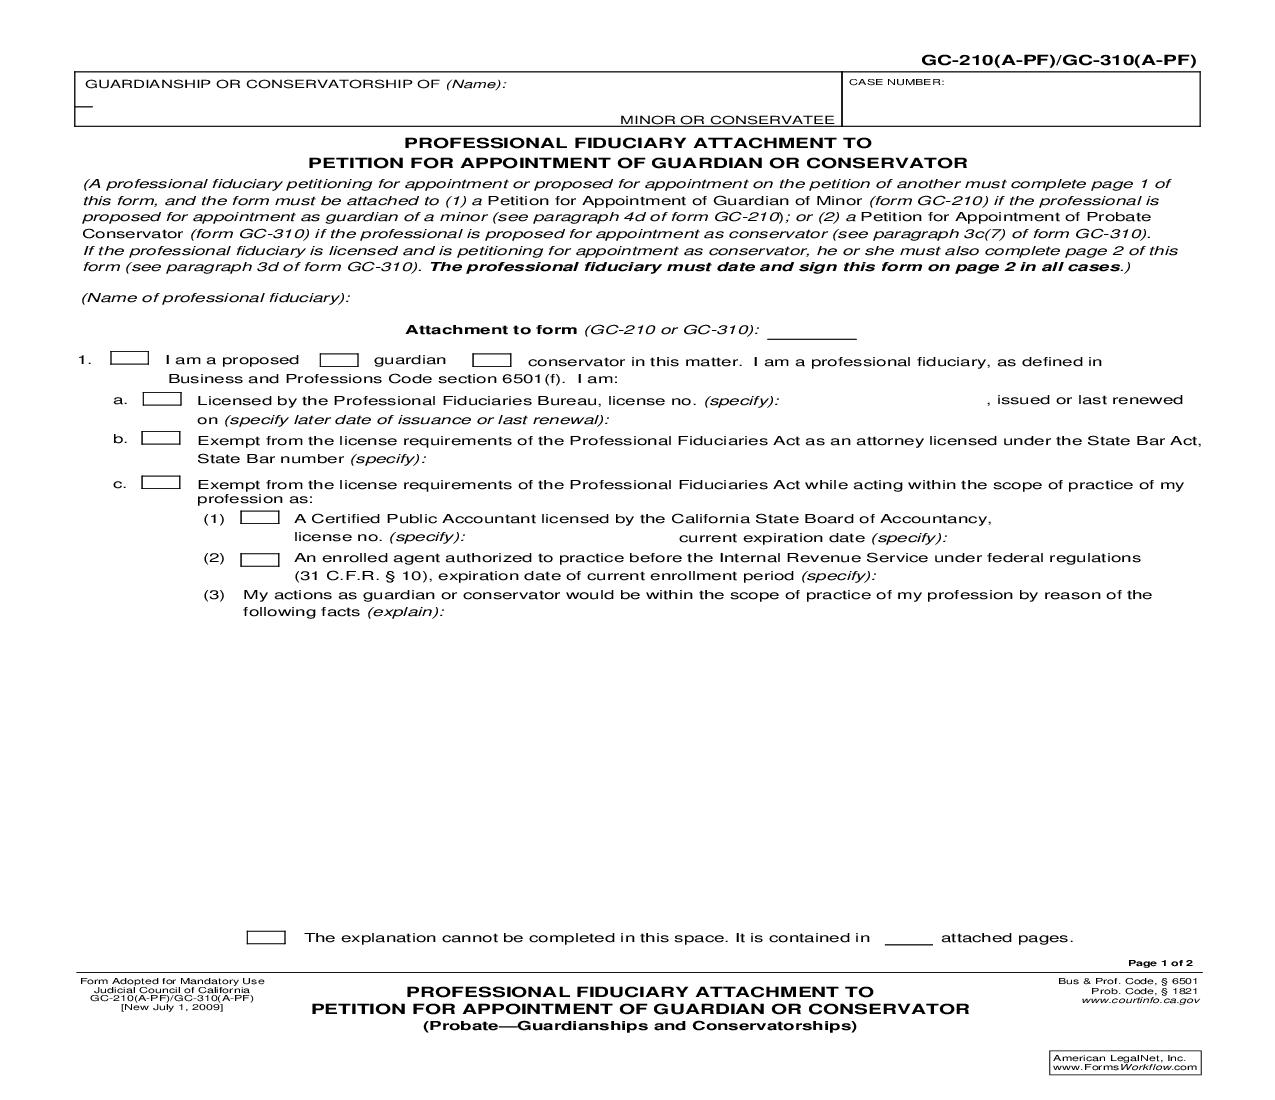 Professional Fiduciary Attachment To Petition For Appointment Of Guardian Or Conservator {GC-210(A-PF) GC-310(A-PF)}   Pdf Fpdf Doc Docx   California